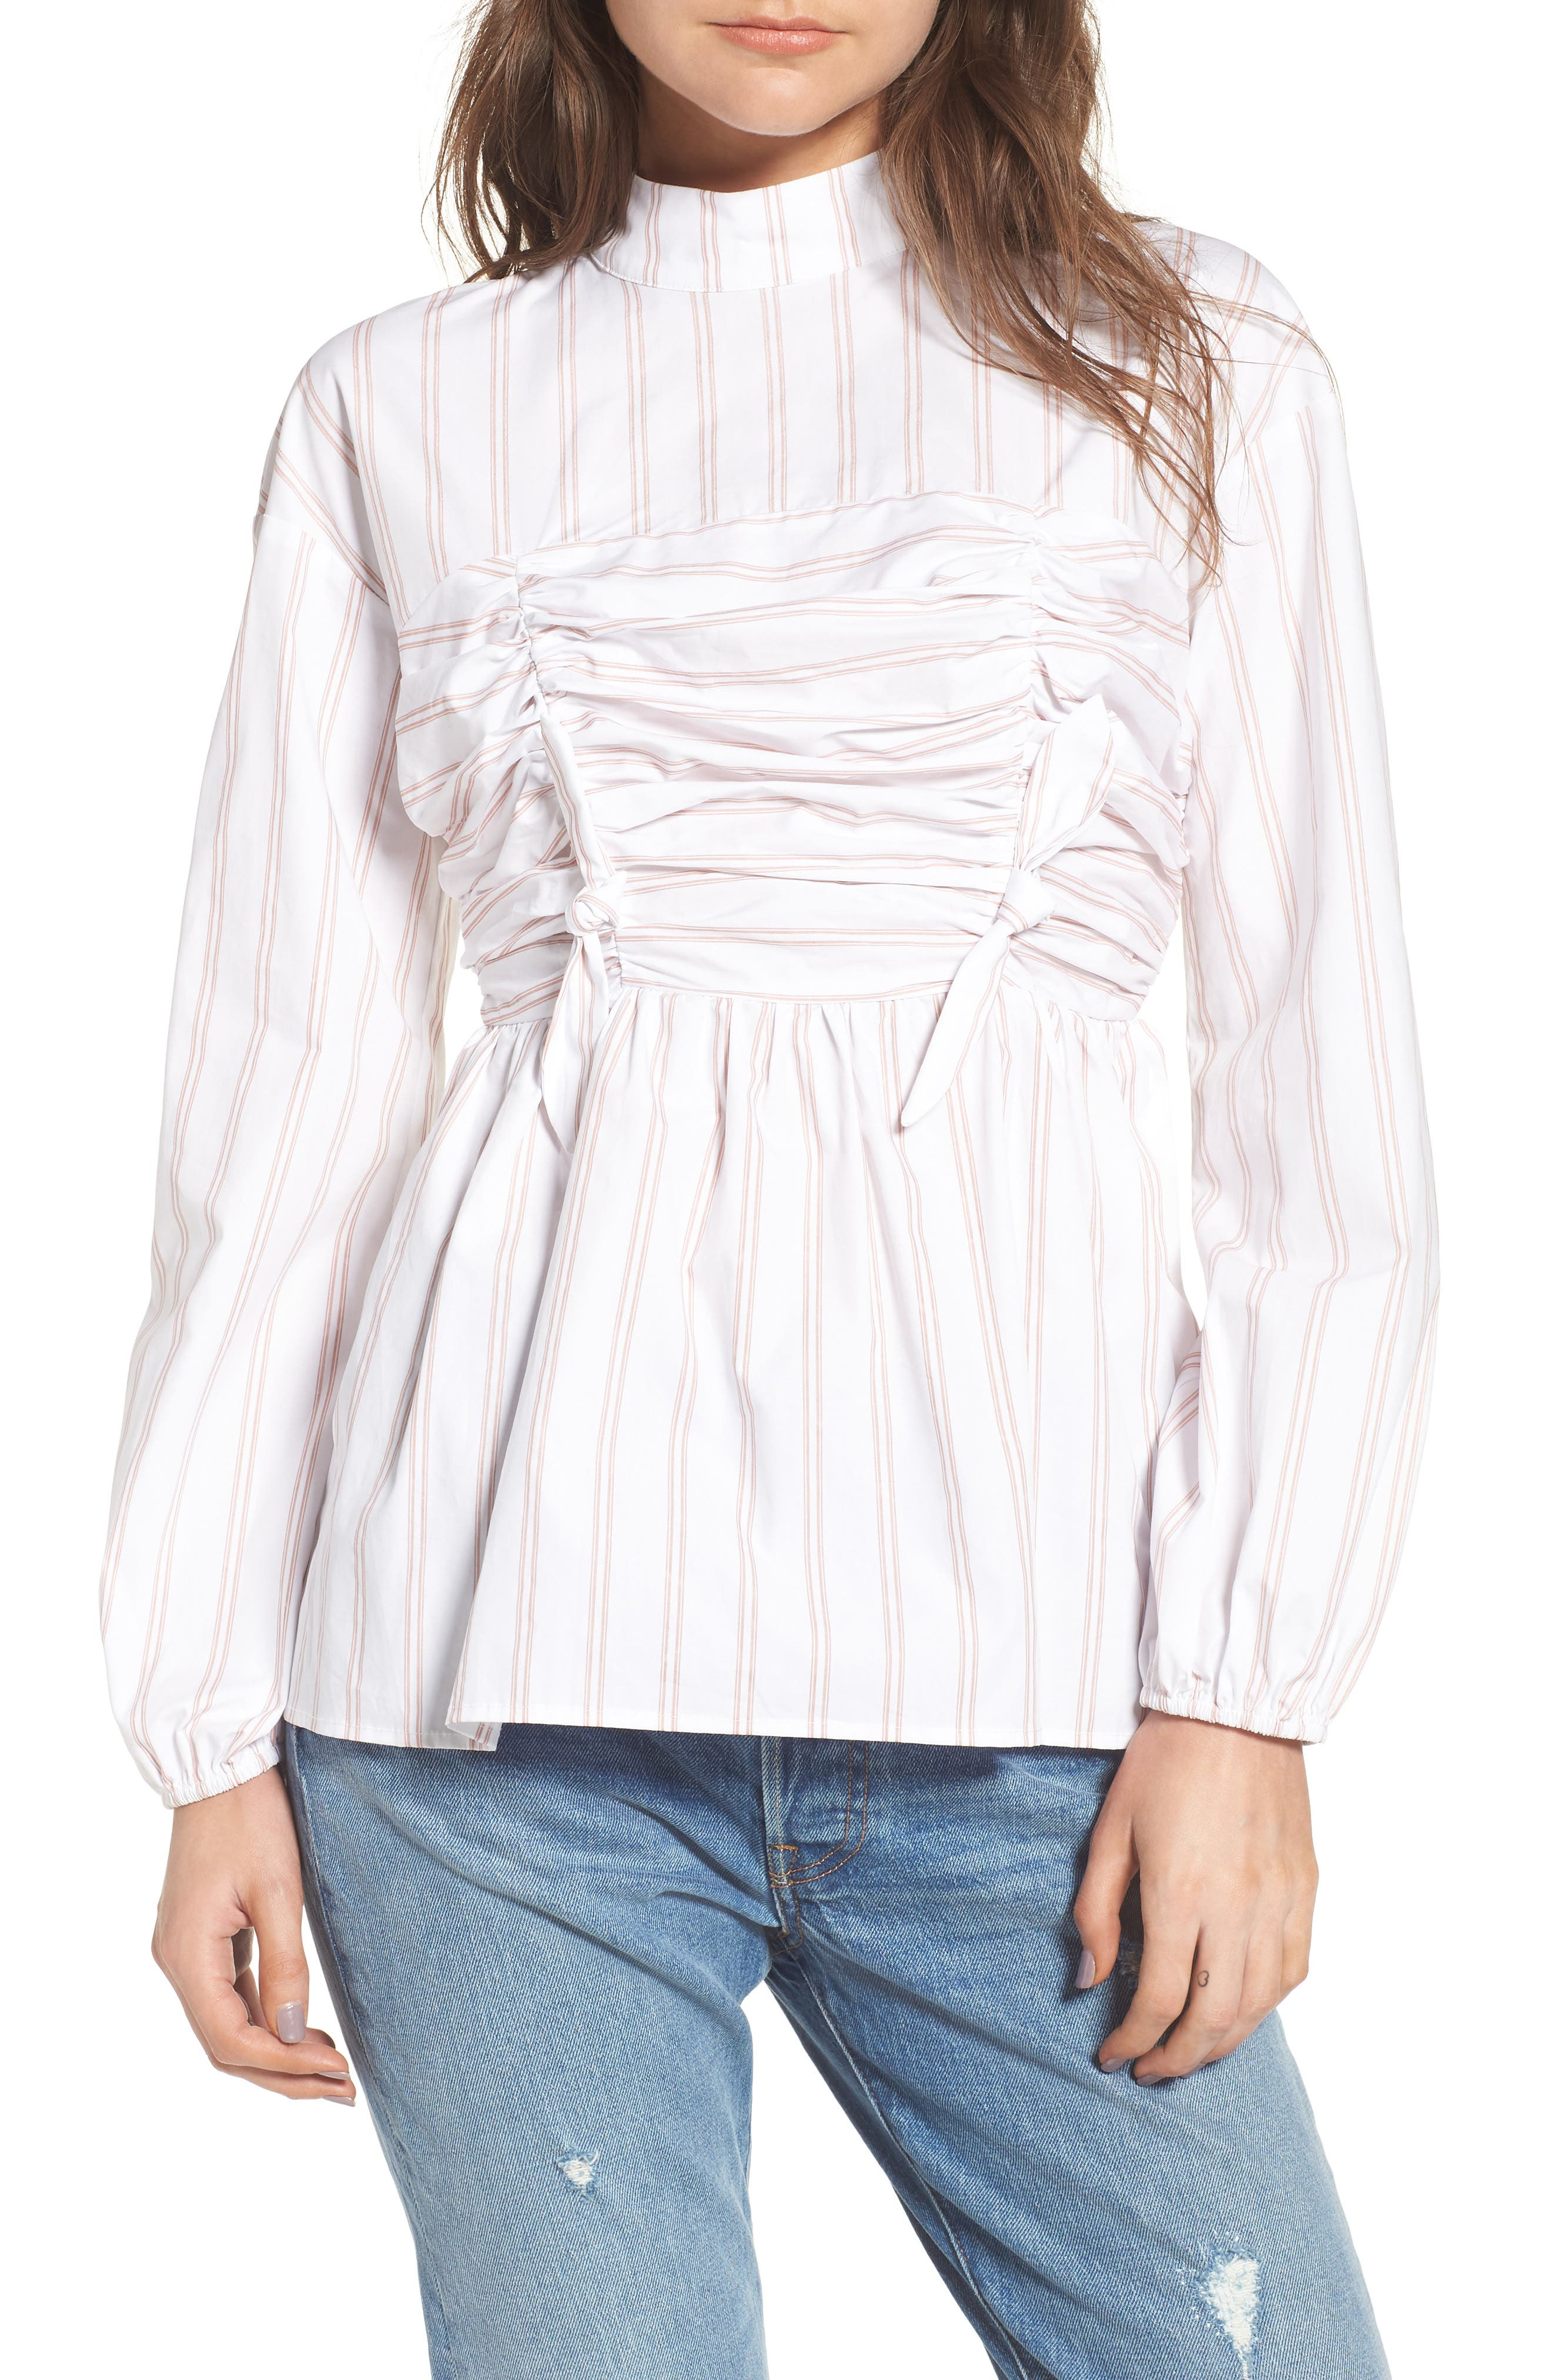 LOST INK Tied Blouse